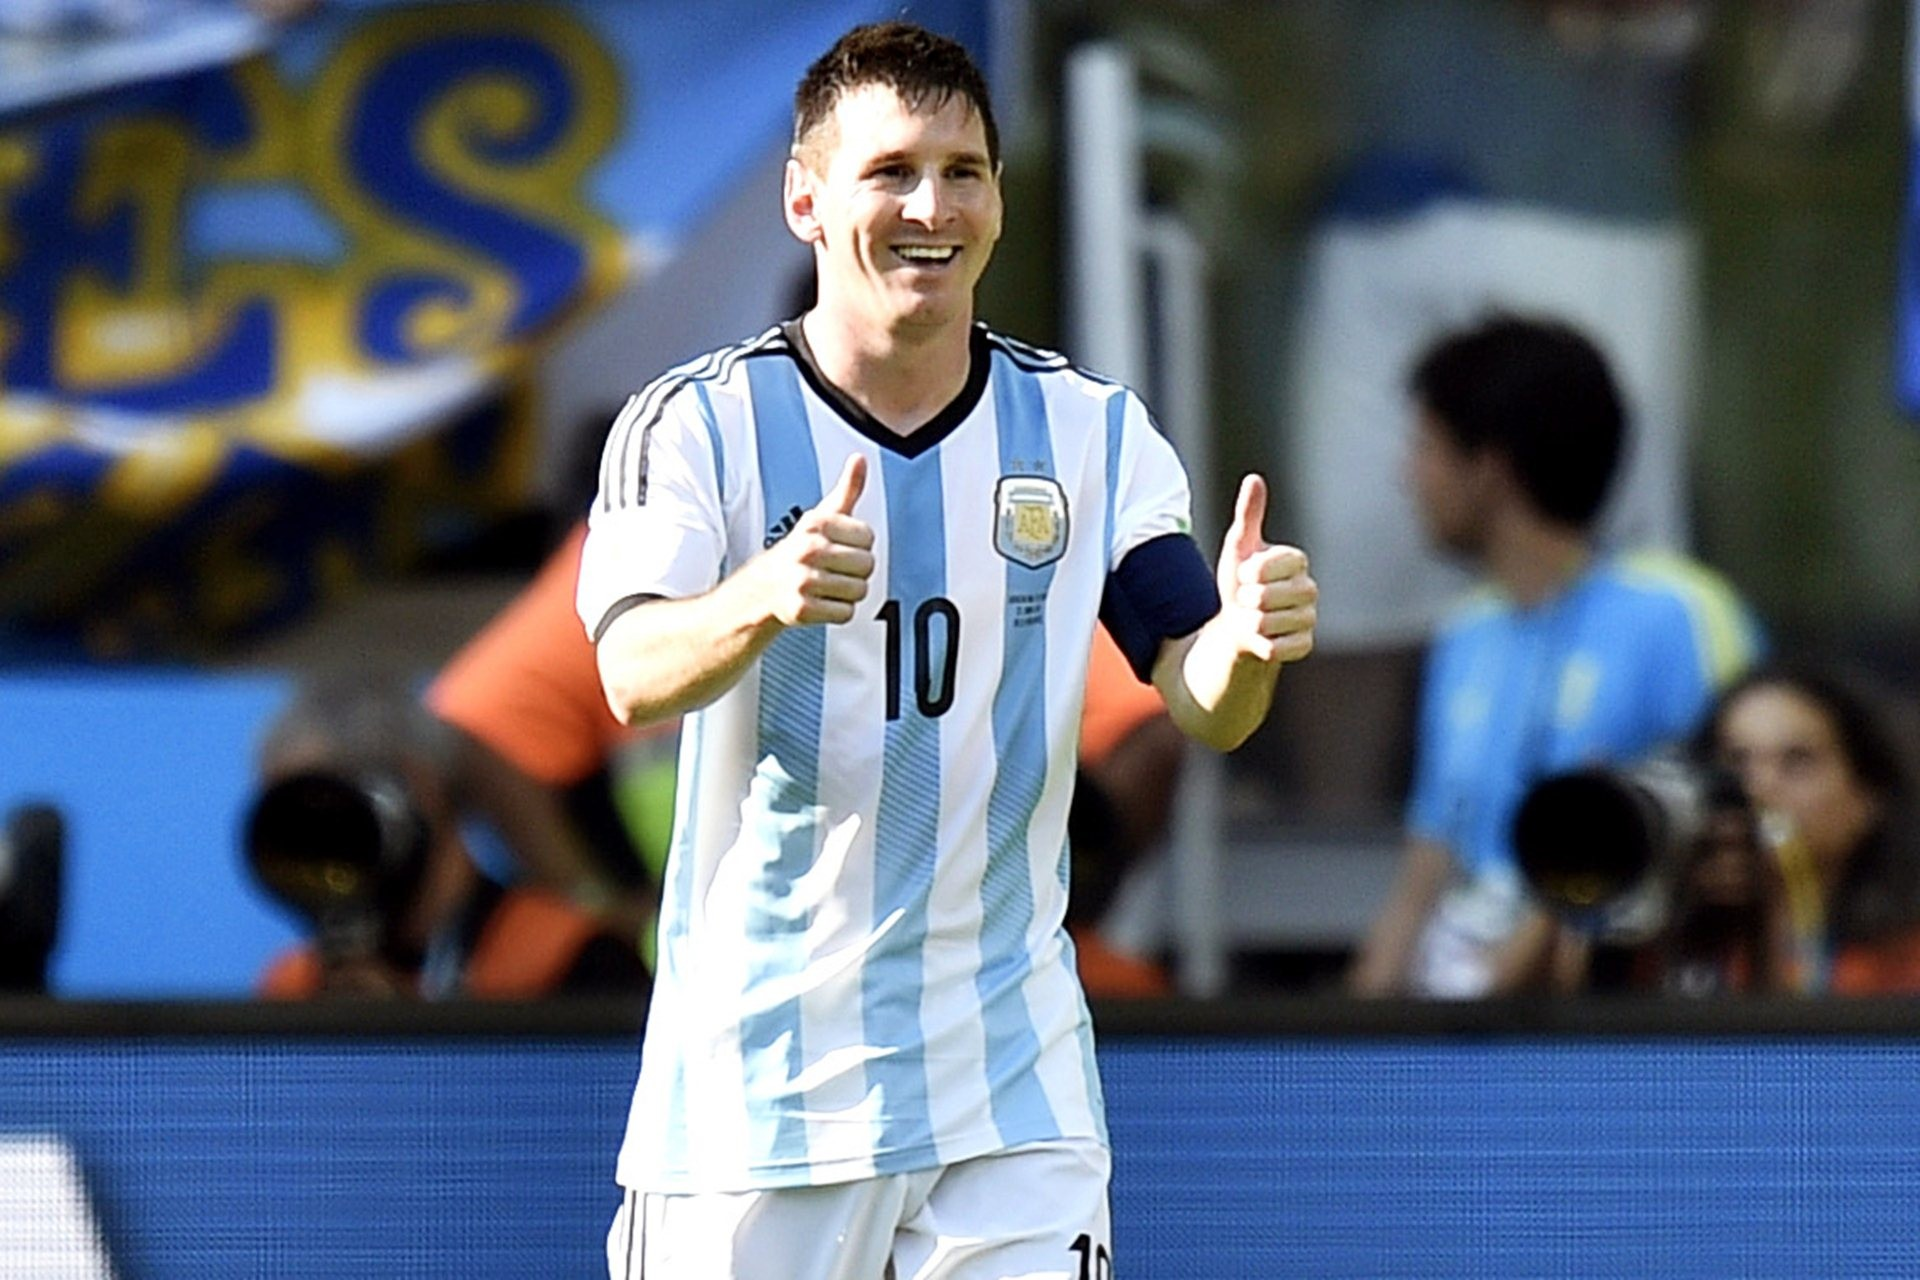 Lionel Messi Wallpapers Hd 1080p 86 Background Pictures